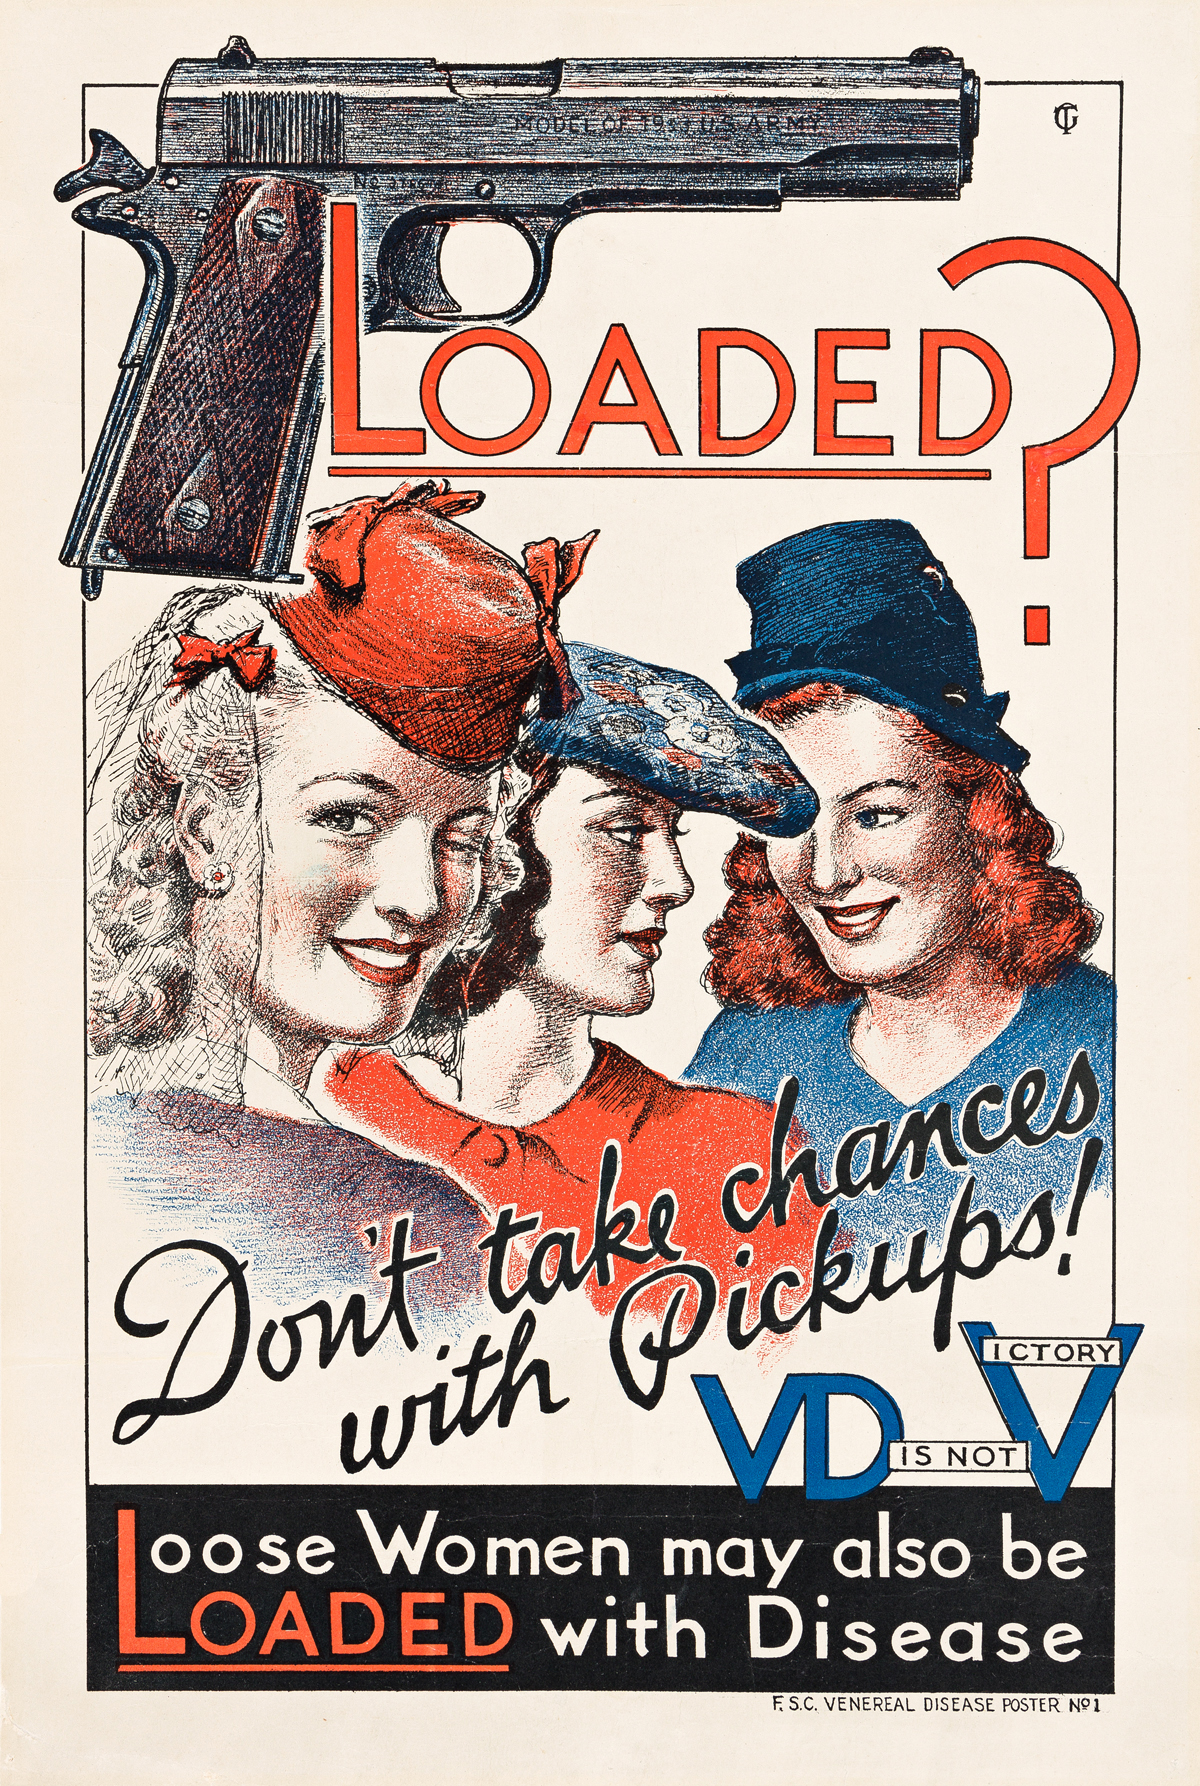 INITIALS UNKNOWN.  LOADED? DONT TAKE CHANCES WITH PICKUPS! / VD IS NOT VICTORY. Circa 1940s. 16x11¼ inches, 40½x27½ cm.